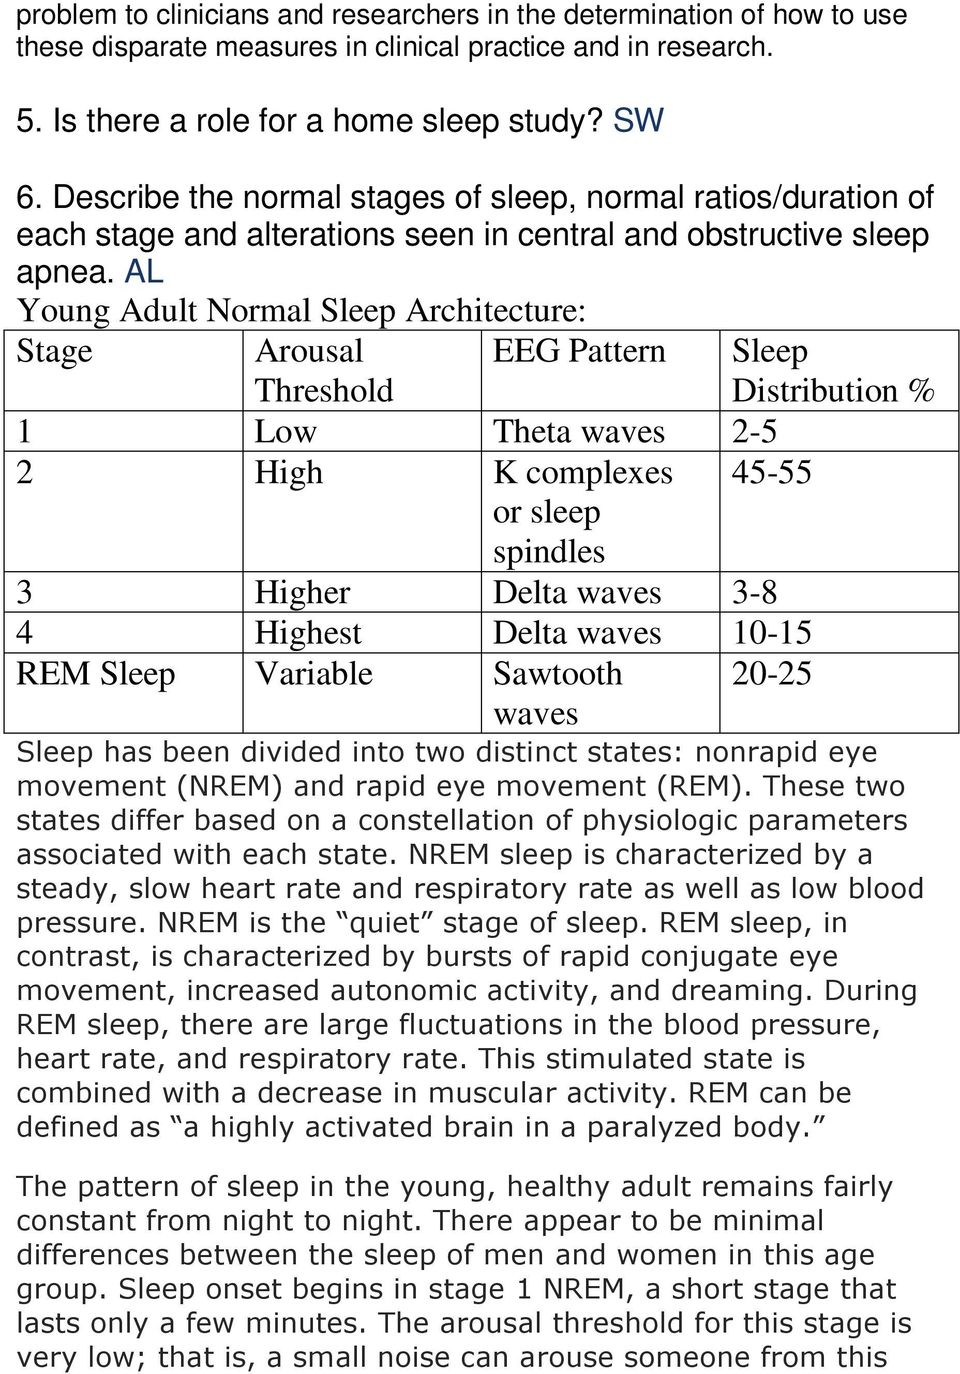 AL Young Adult Normal Sleep Architecture: Stage Arousal Threshold EEG Pattern Sleep Distribution % 1 Low Theta waves 2-5 2 High K complexes 45-55 or sleep spindles 3 Higher Delta waves 3-8 4 Highest